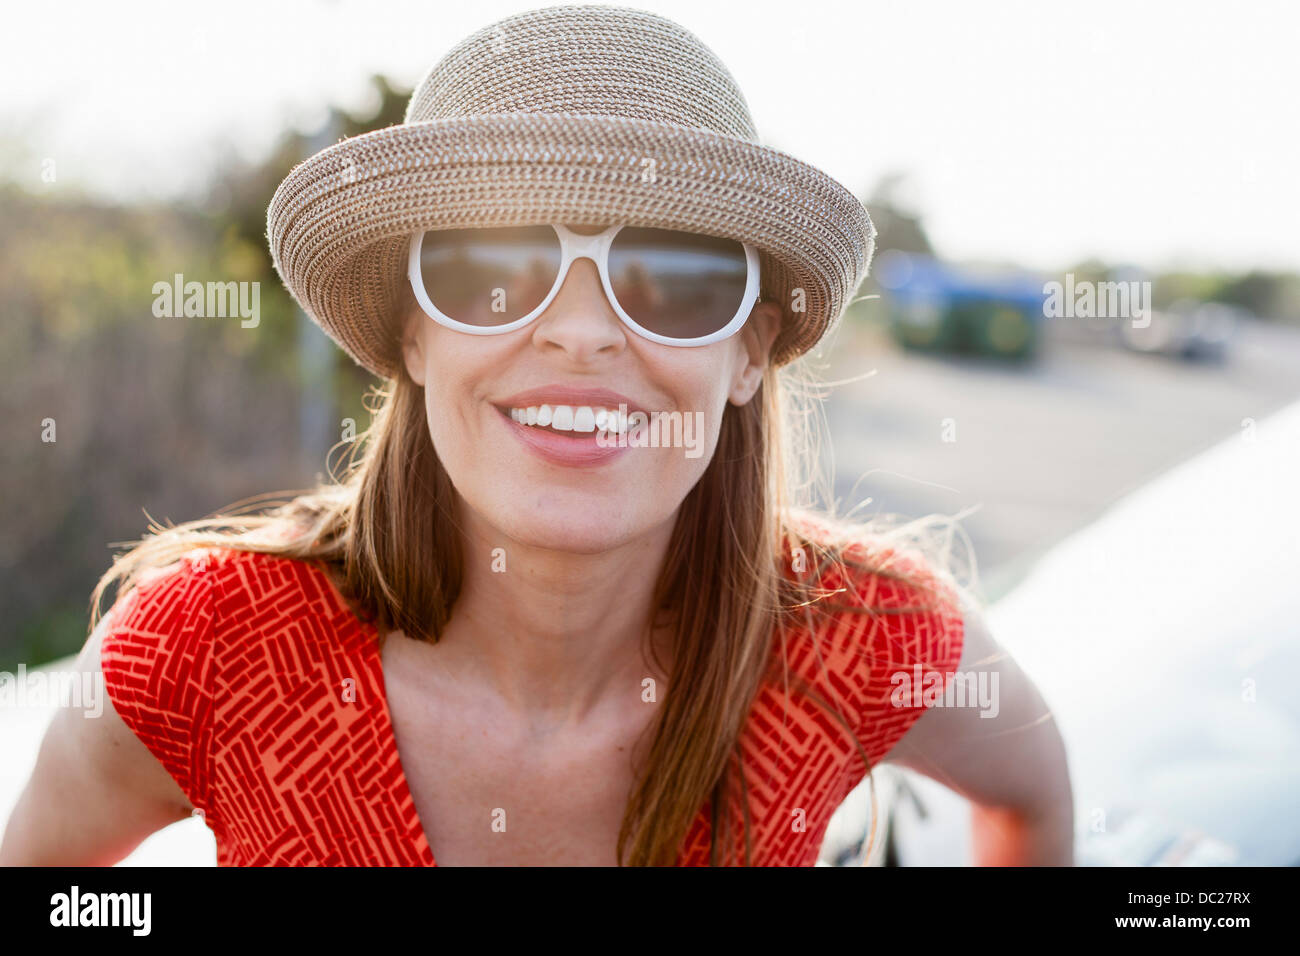 Young woman wearing Sunglasses and sunhat smiling towards camera Photo Stock